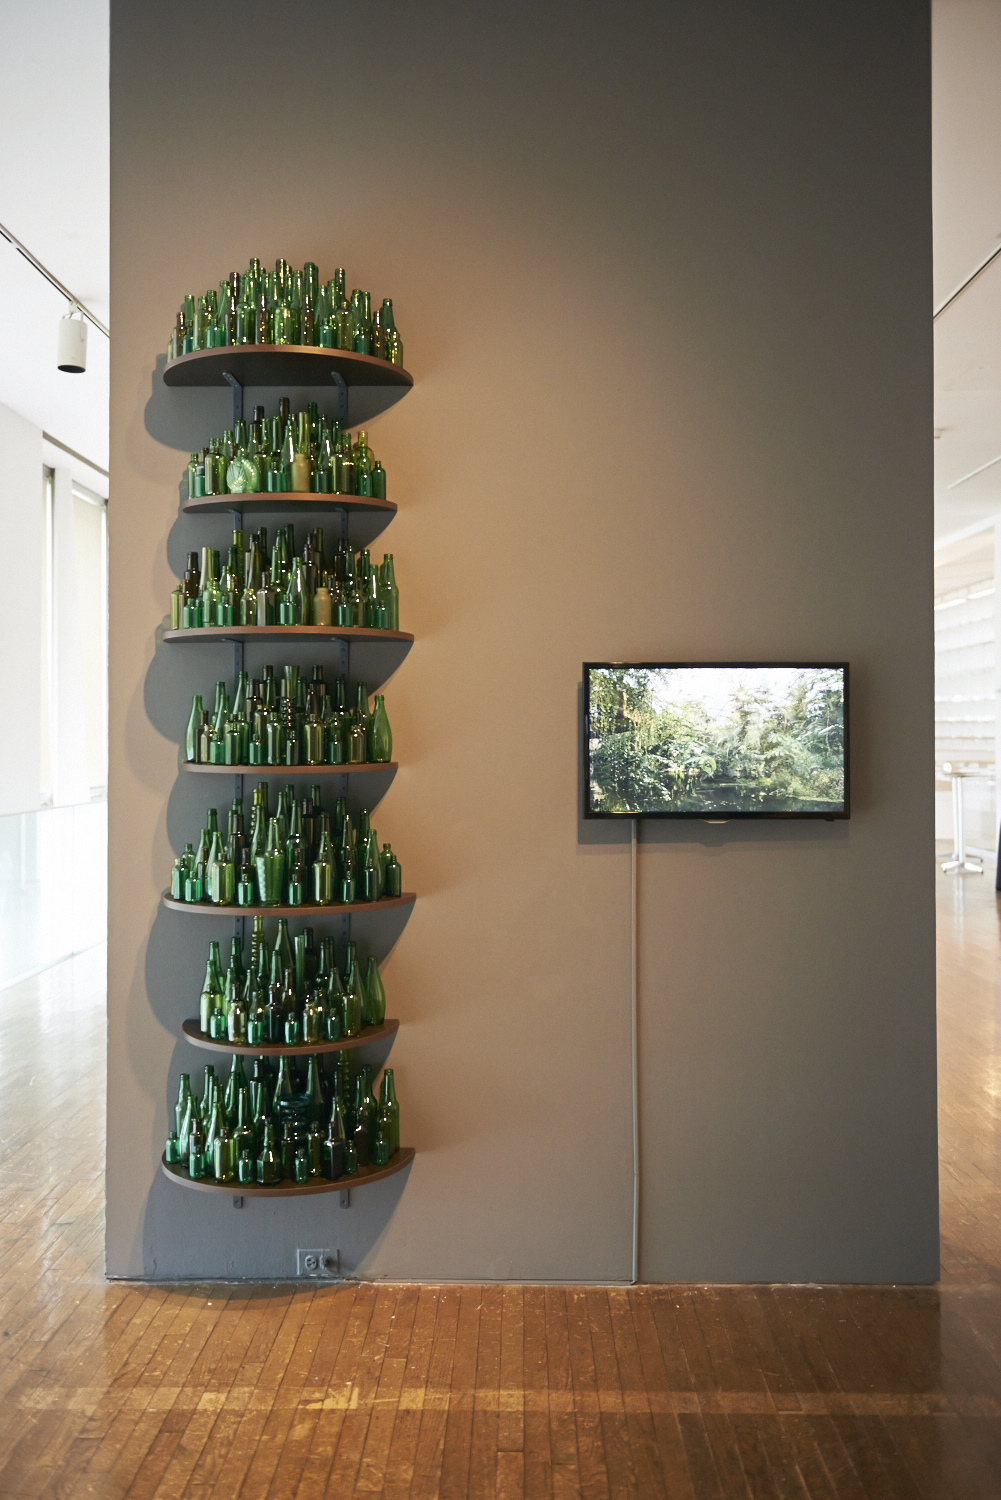 The Forest Speaks Back. Donna Ong, 2-channel video and mixed-media installation, 2014. Image courtesy of the artist.